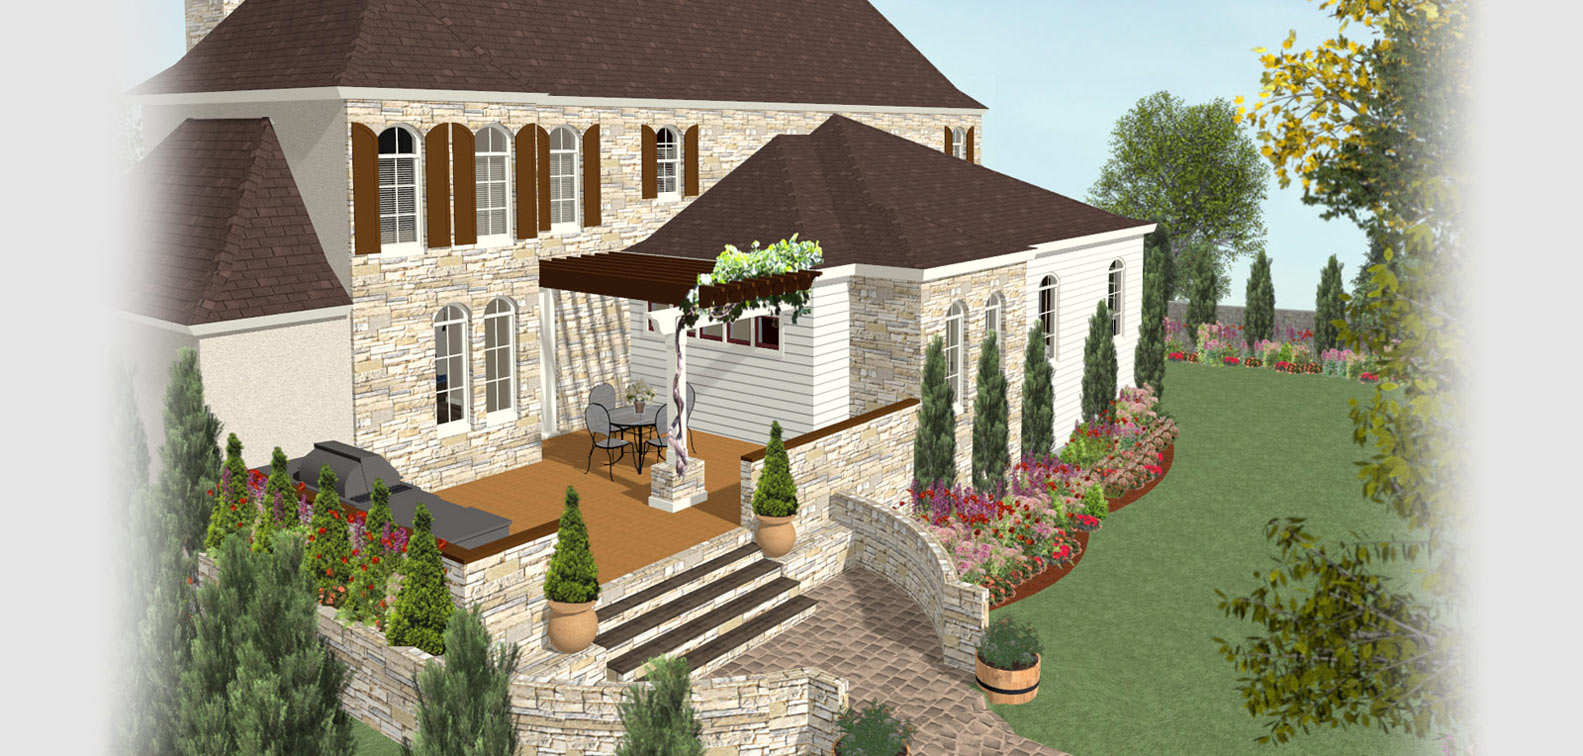 Home Garden Design Software Remodelling Fair Home Designer Software For Deck And Landscape Software Projects Review